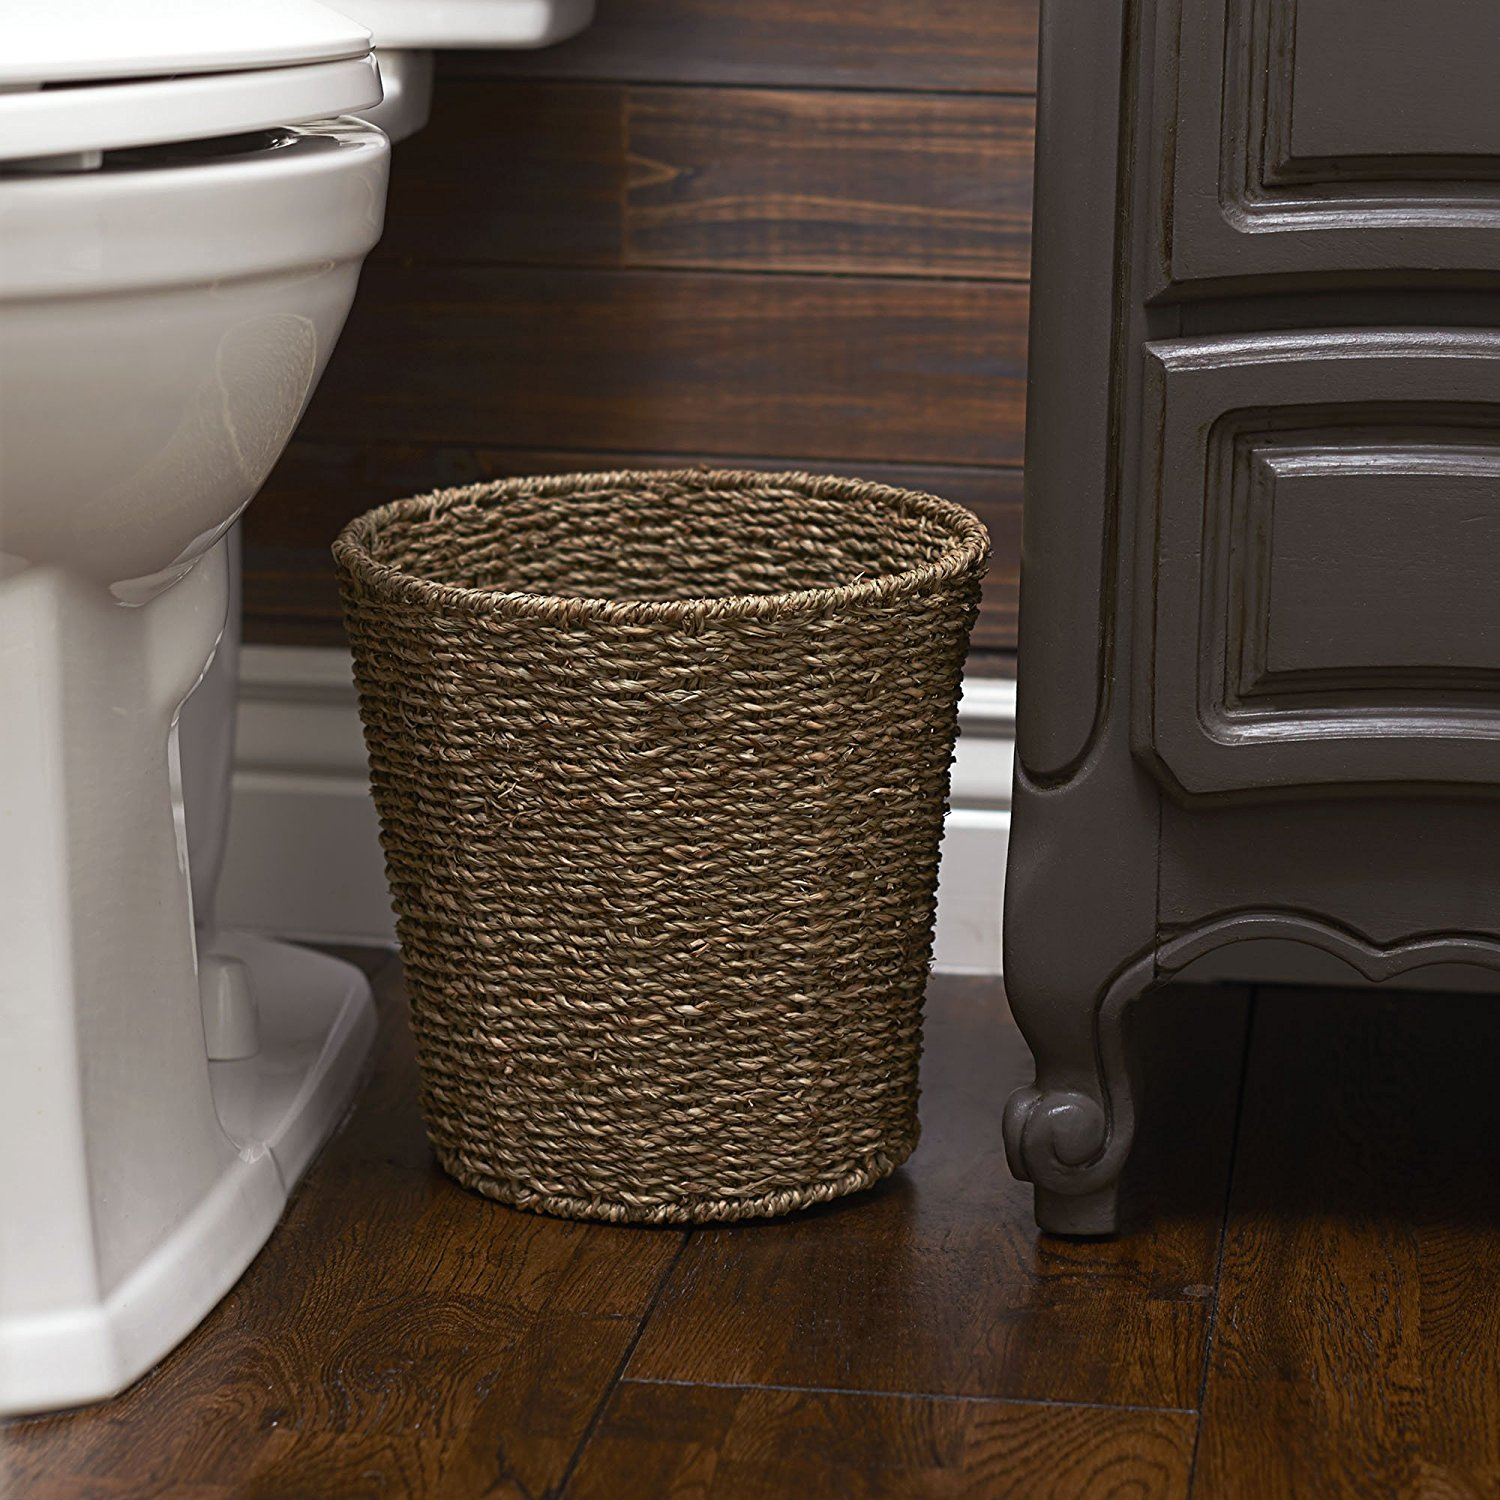 Stylish Small Bathroom Trash Cans For 15 Or Less Apartment Therapy